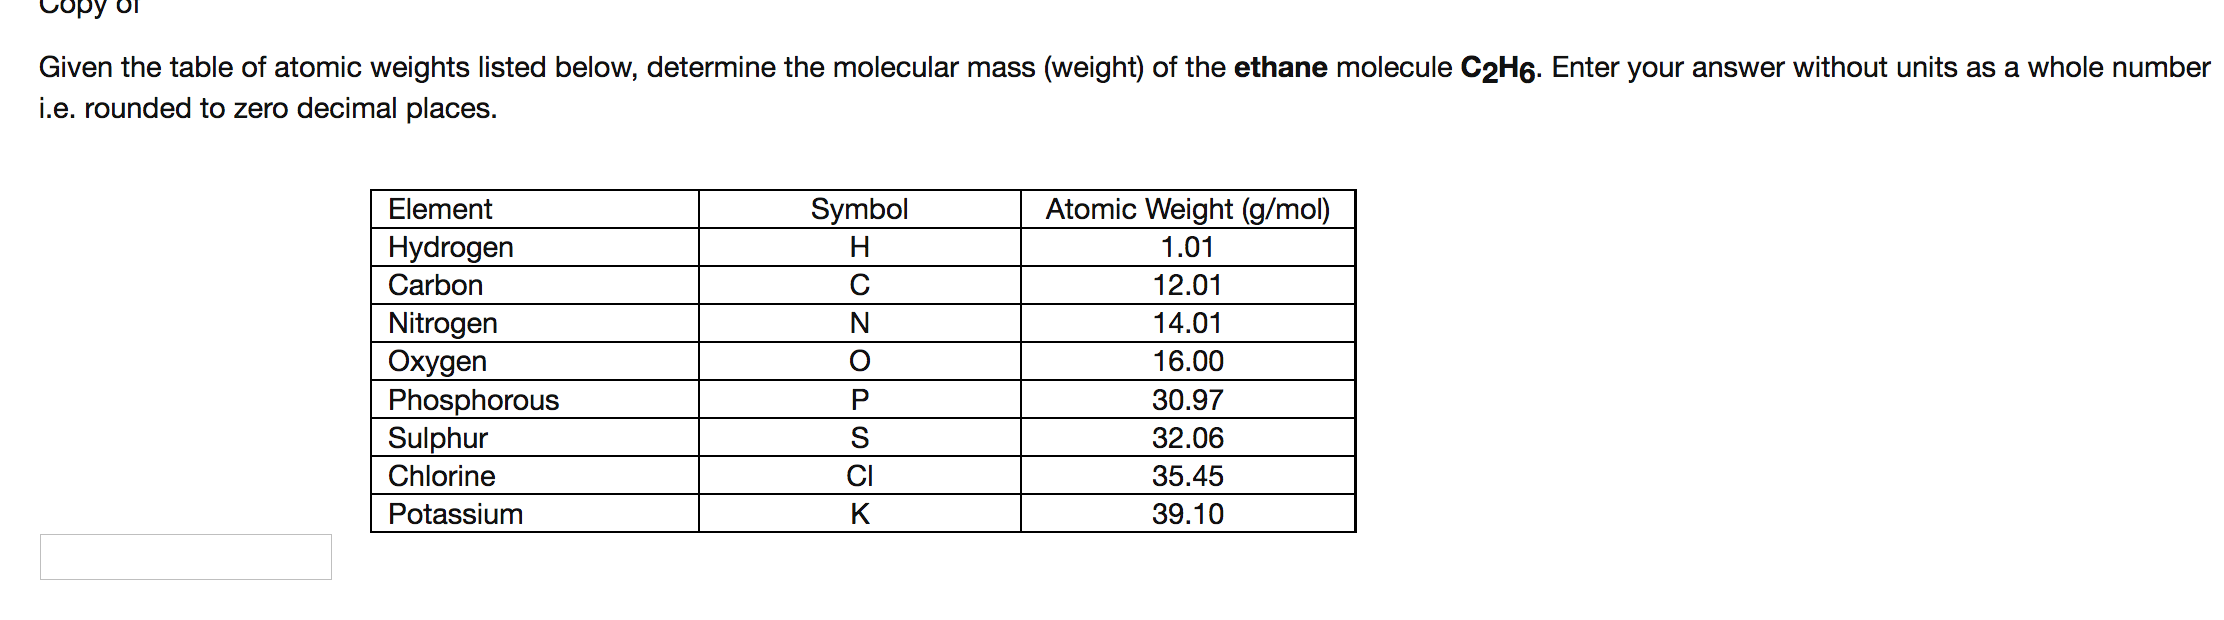 Solved Copy Ol Given The Table Of Atomic Weights Listed B